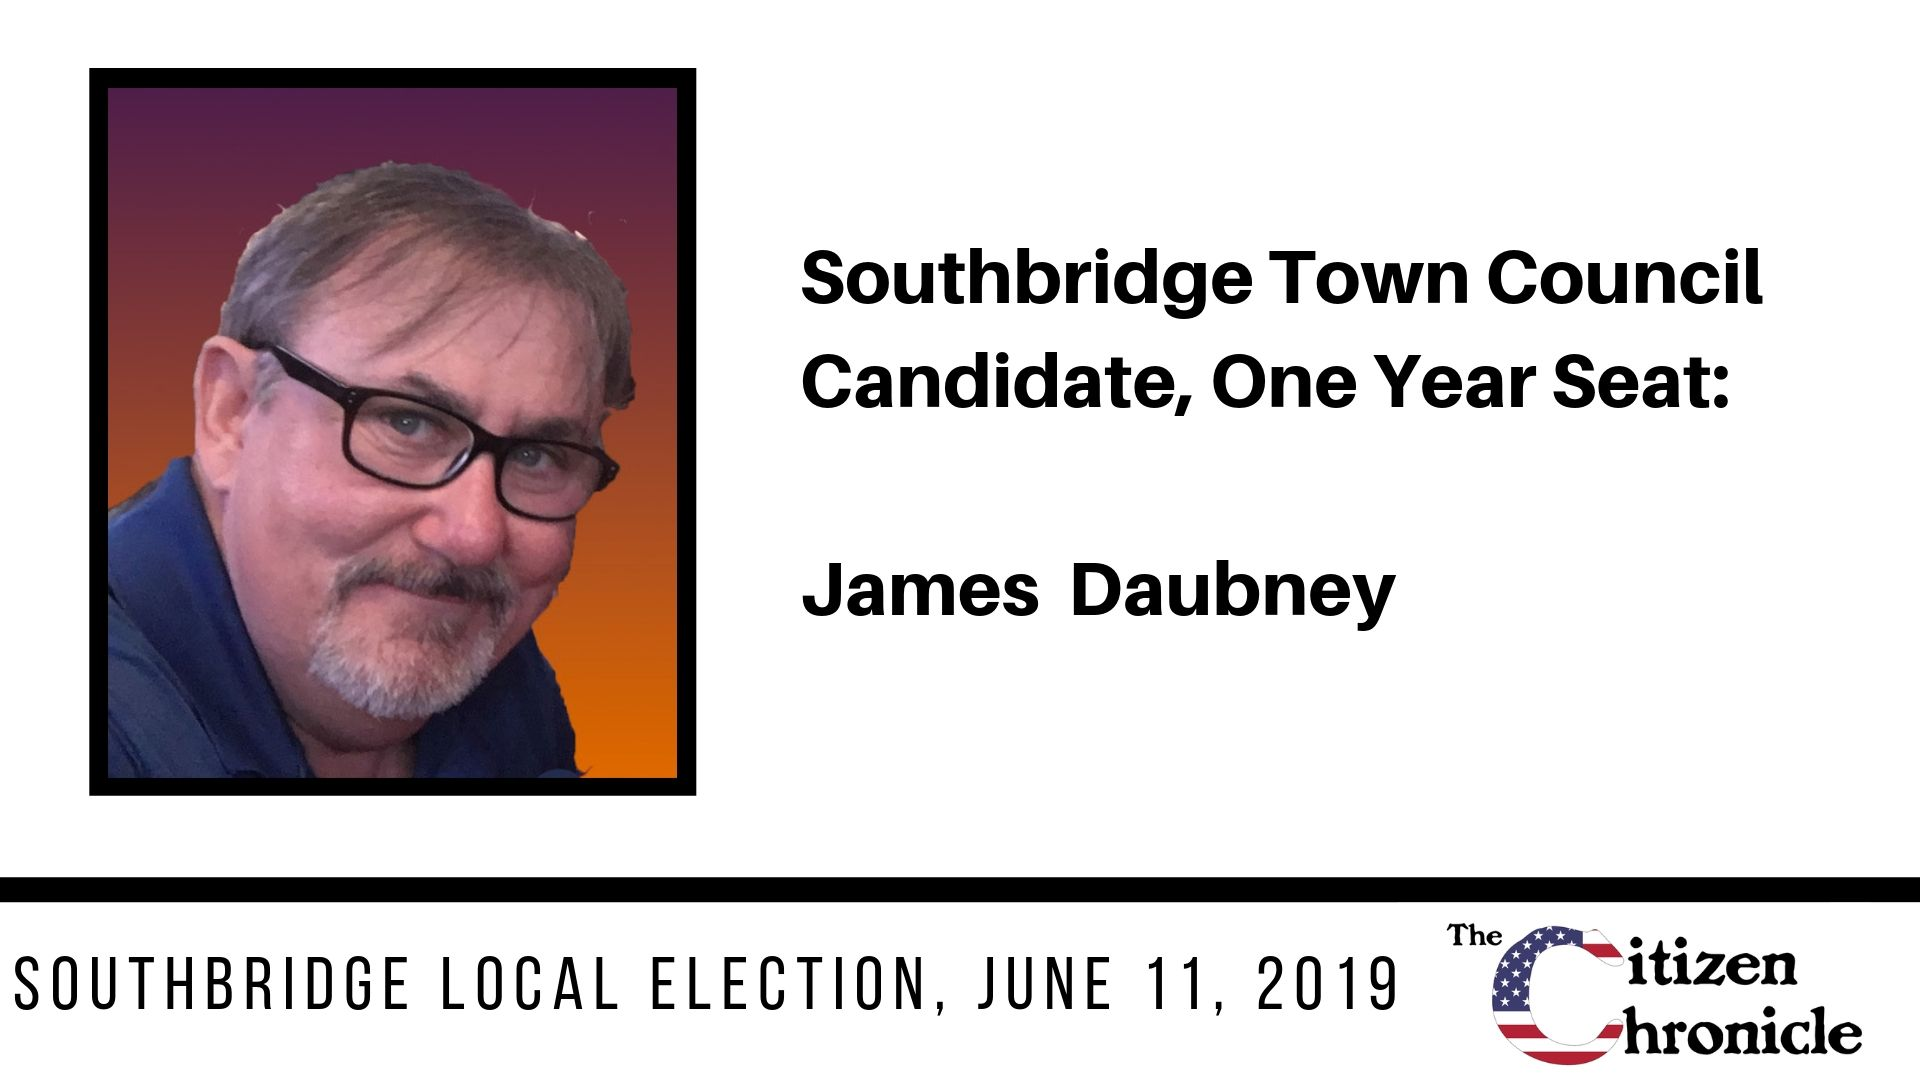 Southbridge Local Election: Letter from James Daubney